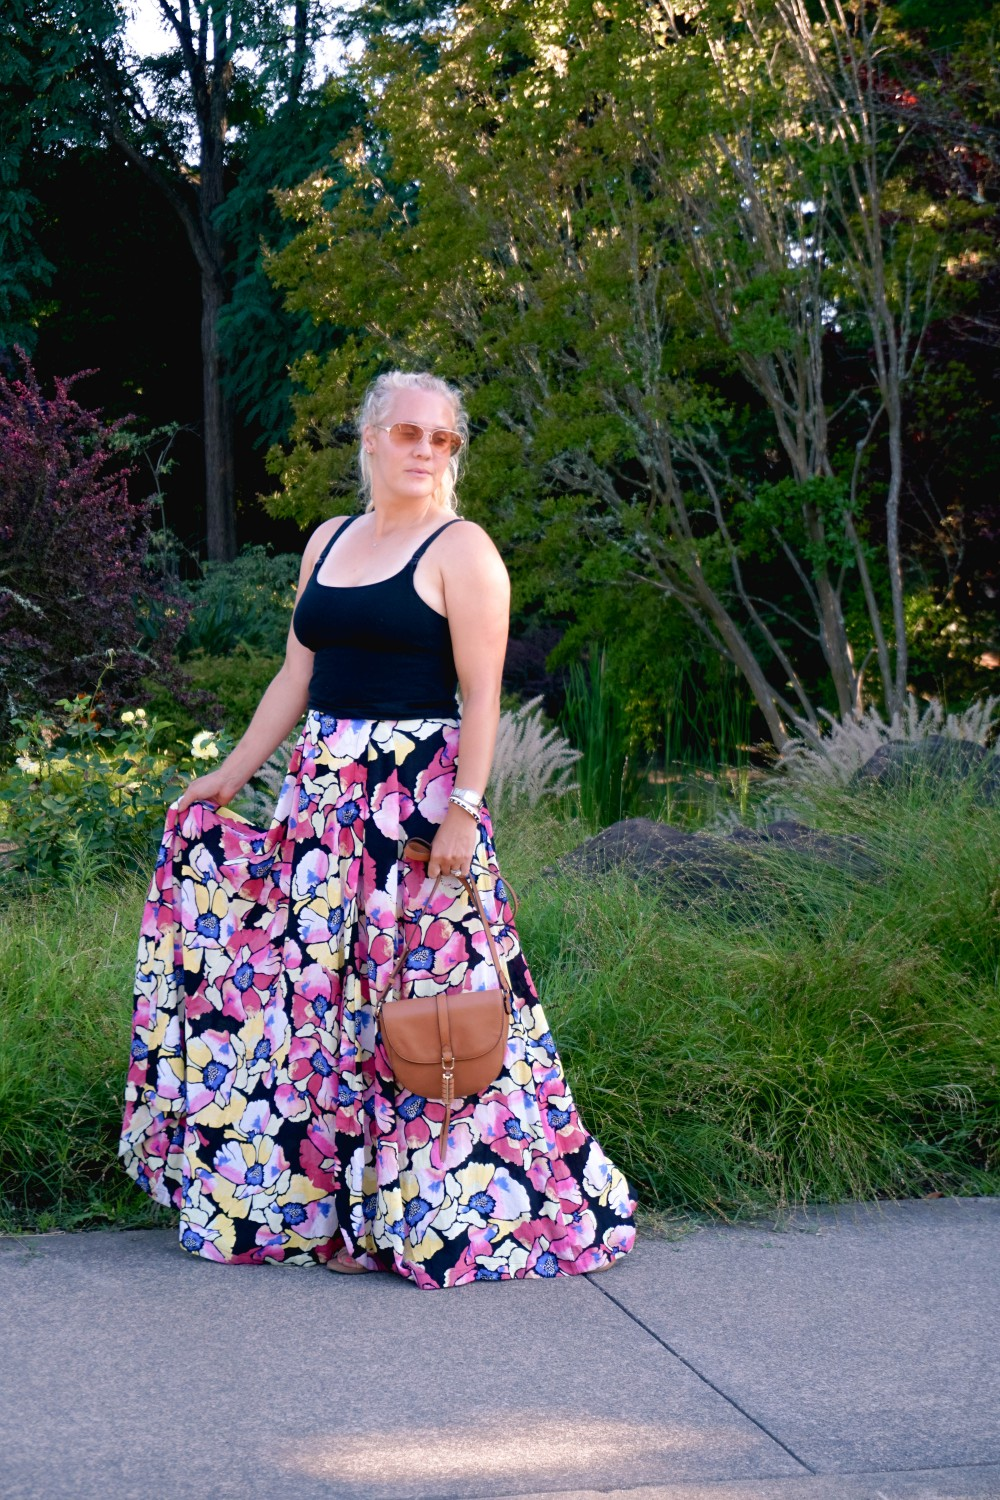 Hot Tropics Floral Maxi Skirt-Free People Floral Maxi Skirt-Outfit Inspiration-Wine Country-Mom Style-Nursing Top-Have Need Want 6